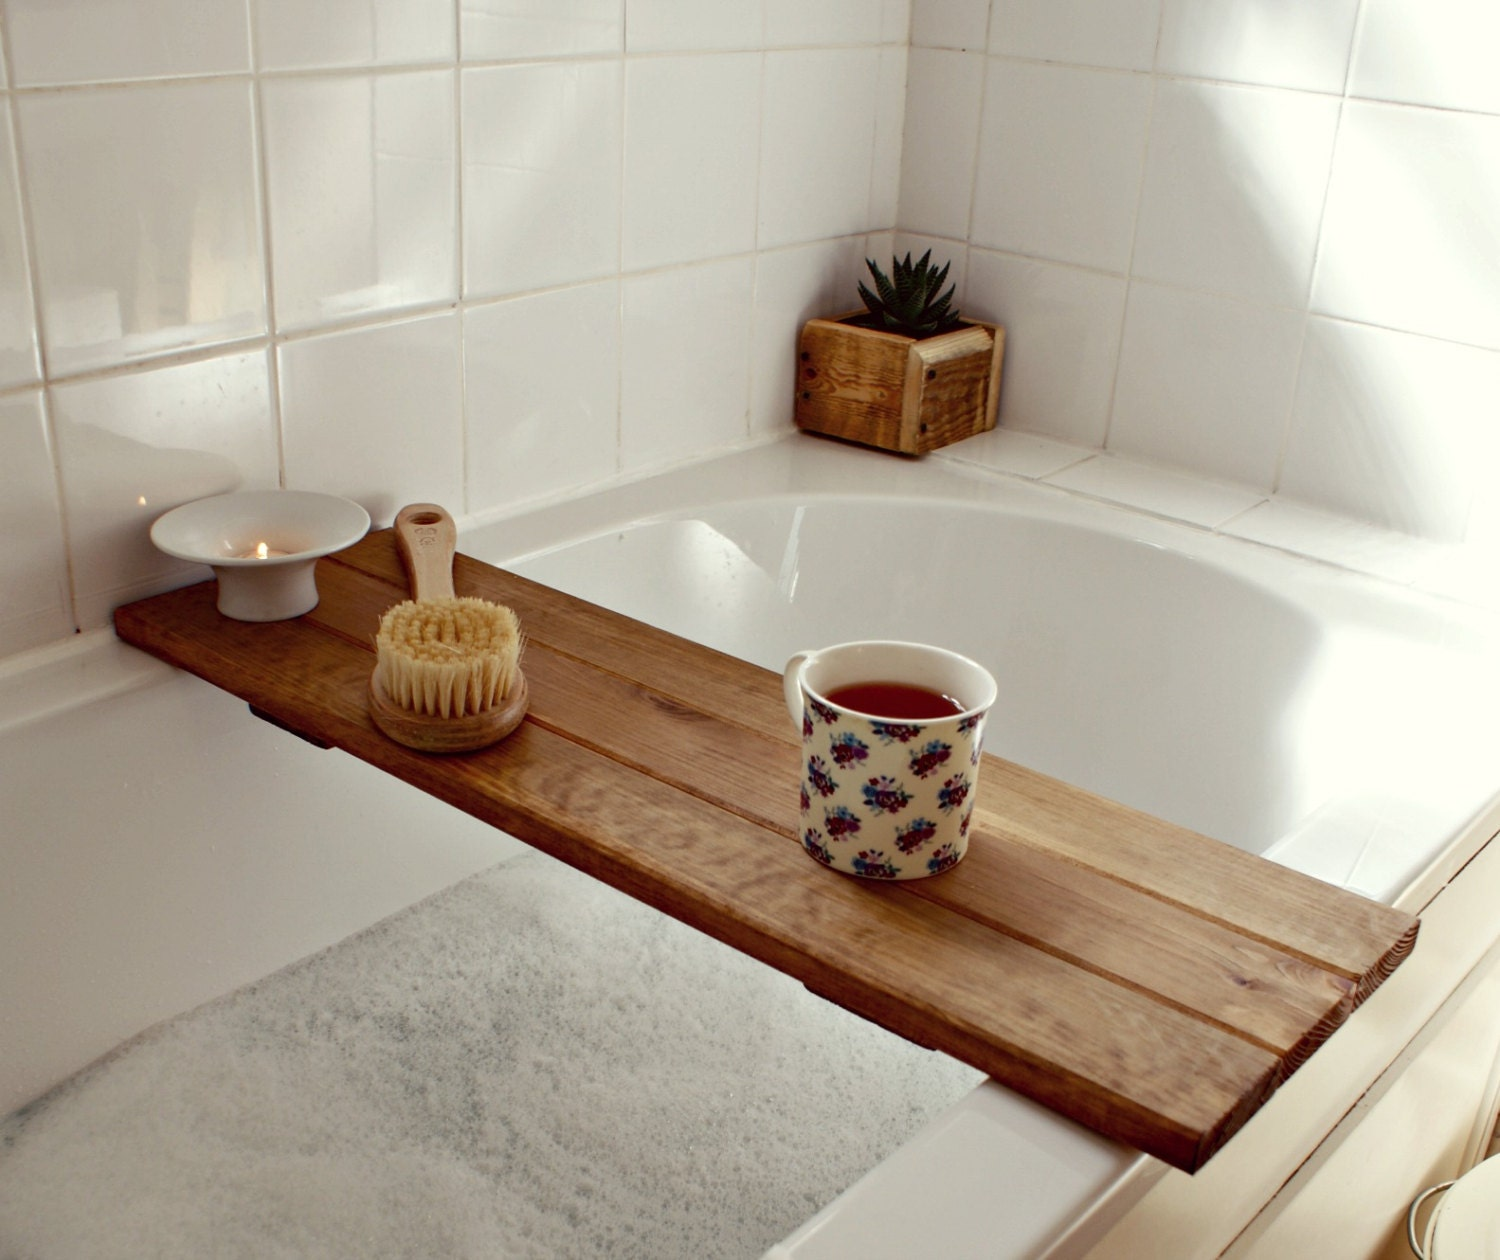 Bath Tray Reclaimed Wood Tray. Bathroom Decor. Bath Caddy